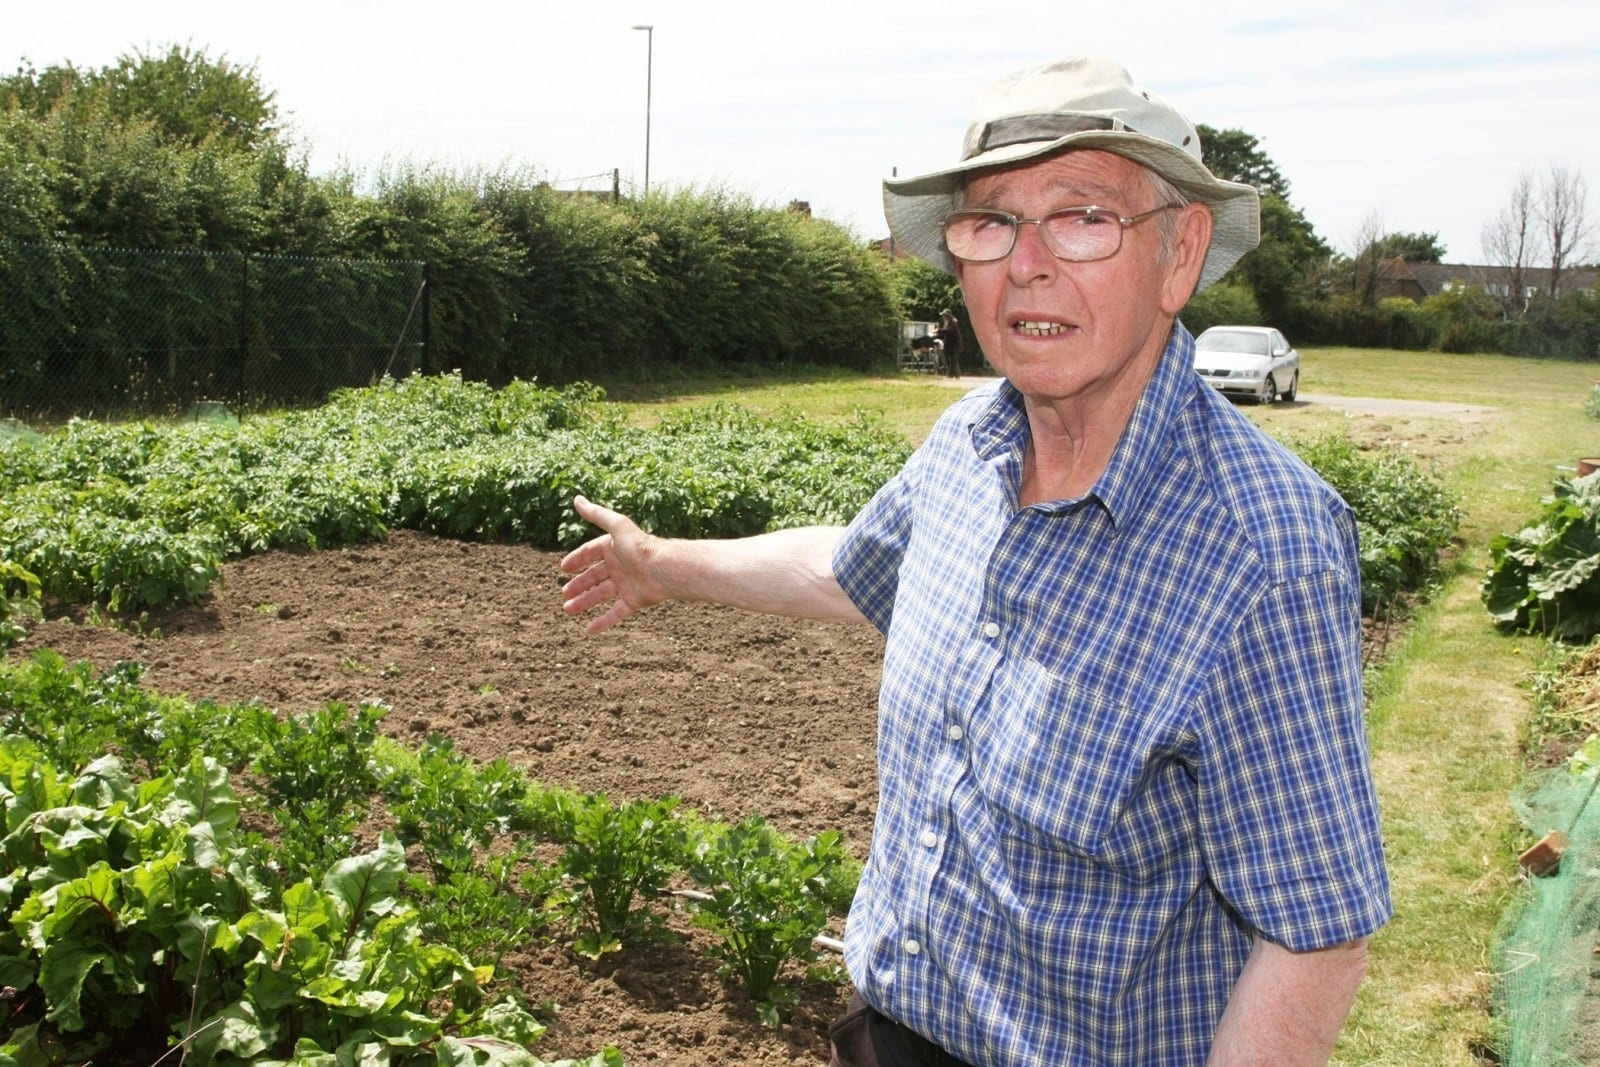 Green-Fingered Pensioner Was Left On The Verge Of Tears After Thieves Raided His Allotment - And Stole All Of His Vegetables